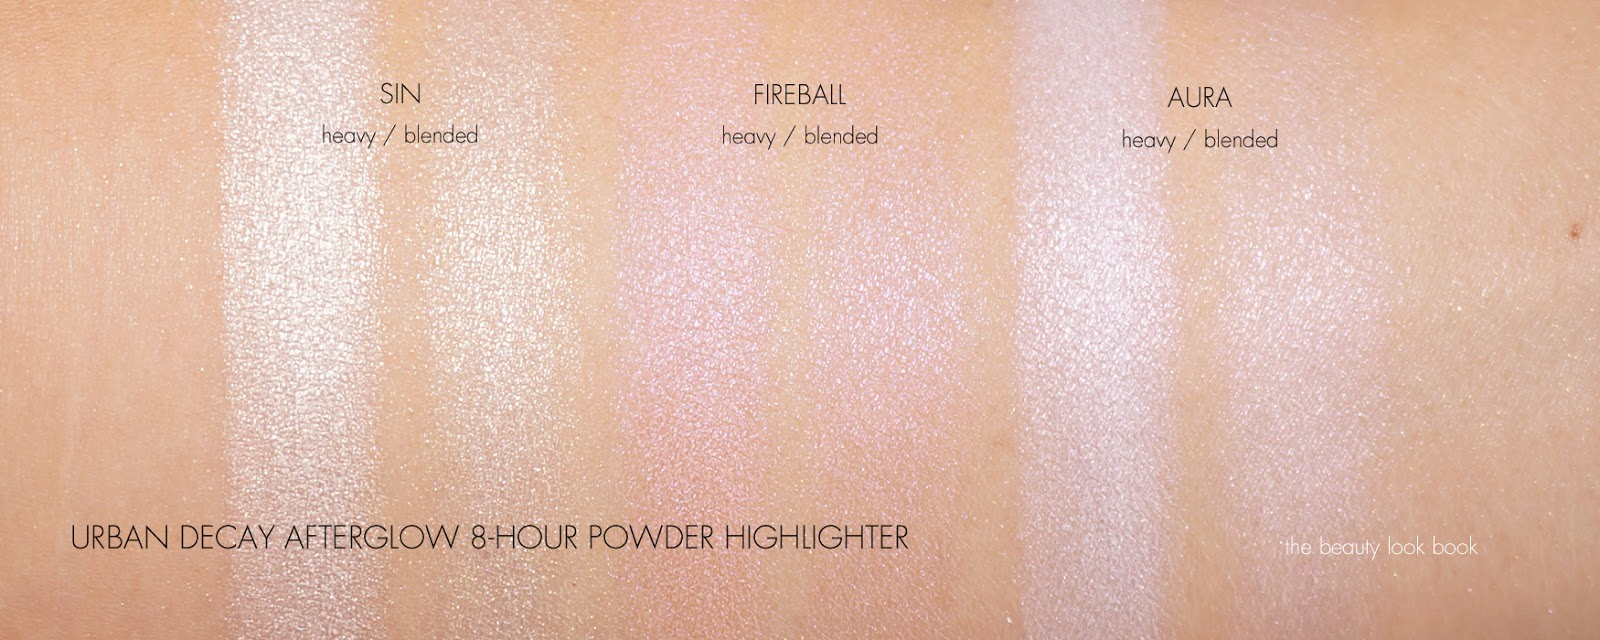 Afterglow 8-Hour Powder Highlighter by Urban Decay #17